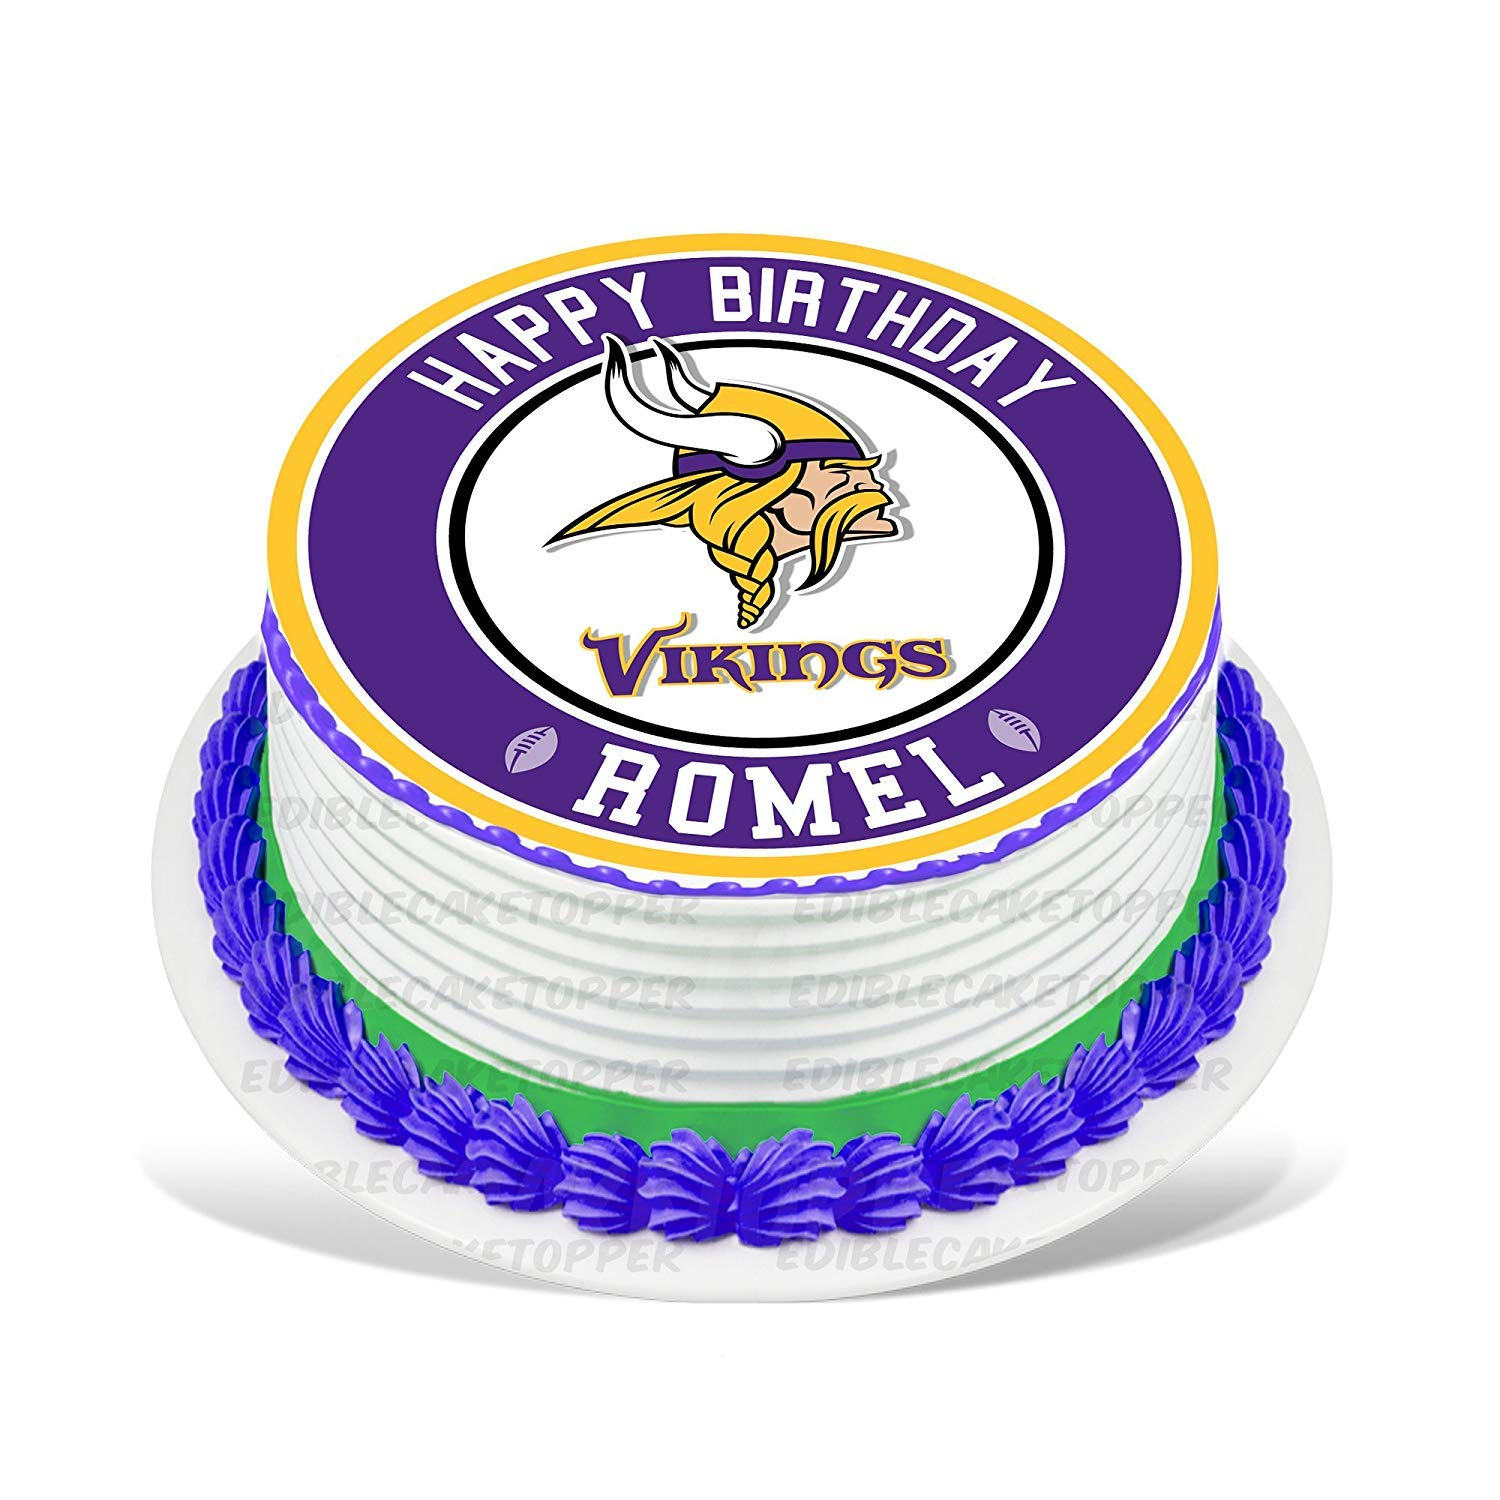 Cakecery Minnesota Vikings Edible Cake Topper Image Personalized Birthday Sheet Party Decoration Round